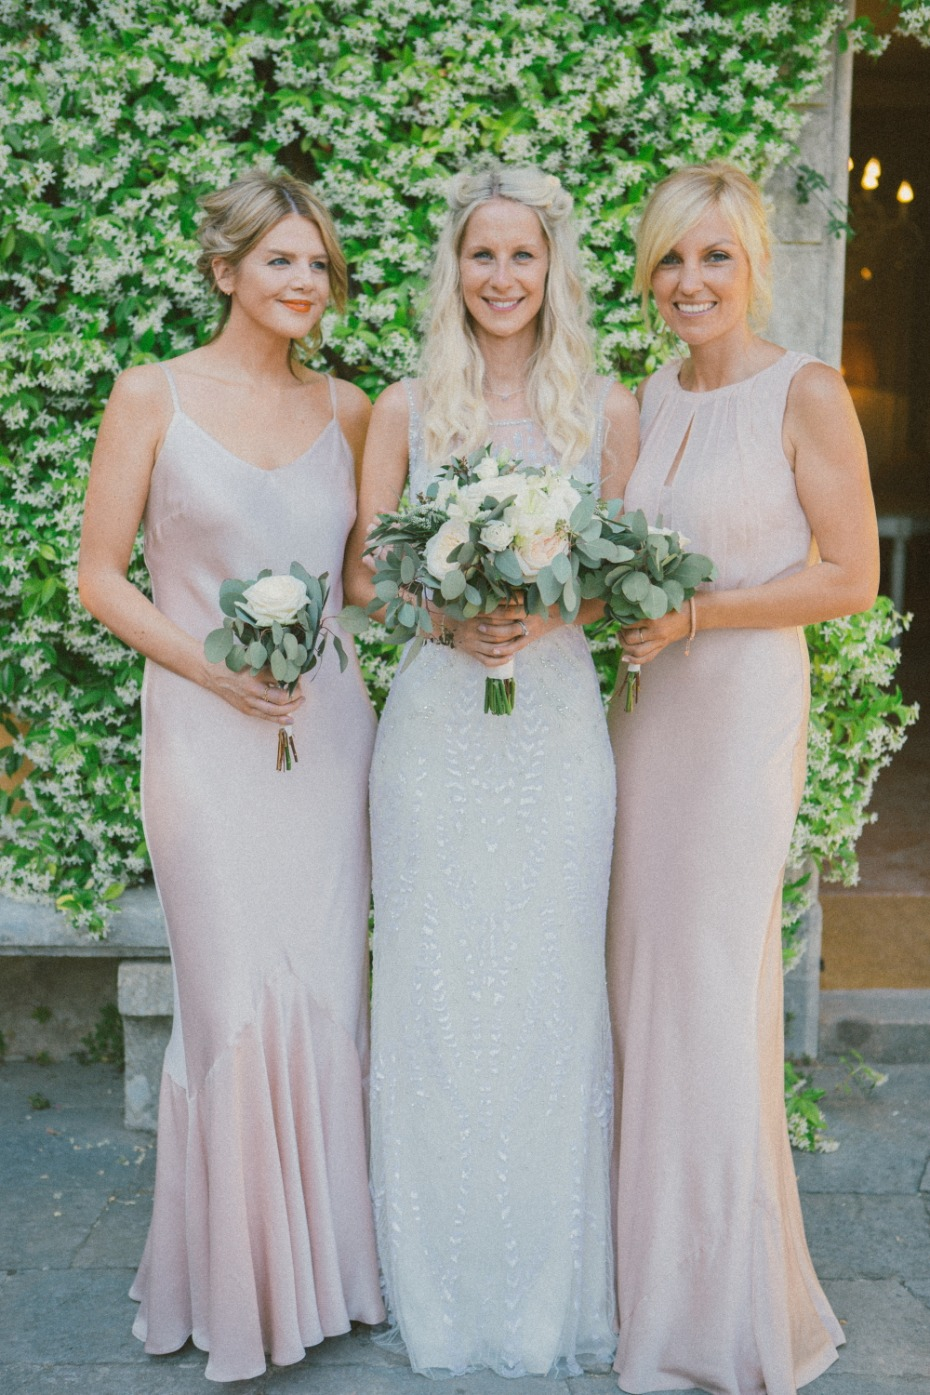 Bride and bridesmaids in blush wedding dress